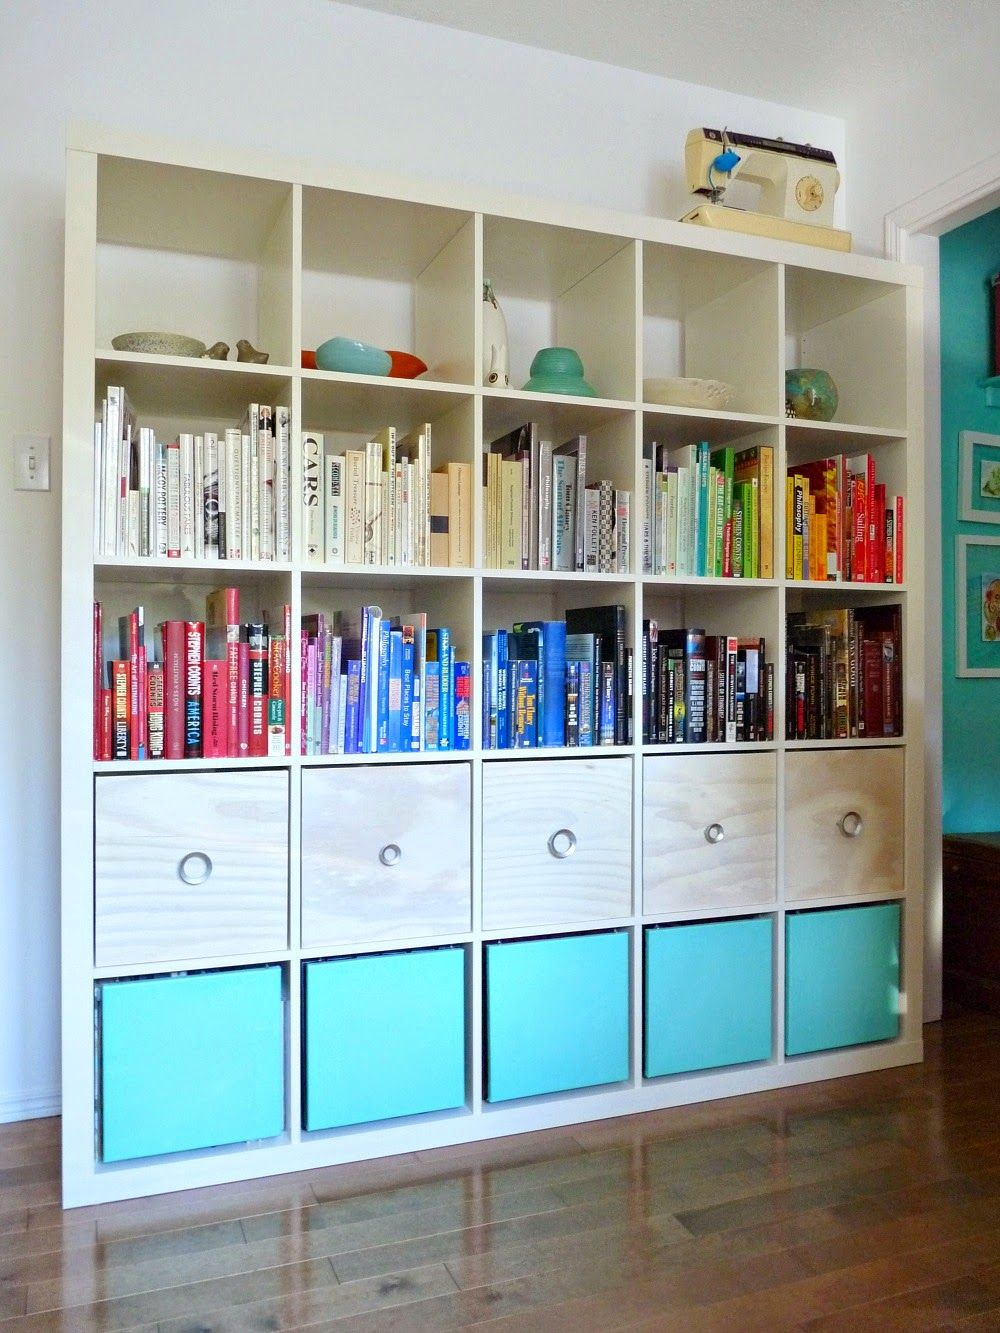 Genius Idea Ikea Expedit Shelves With Baskets For Storage: White Ikea Expedit With DIY Plywood Magazine Files, DIY